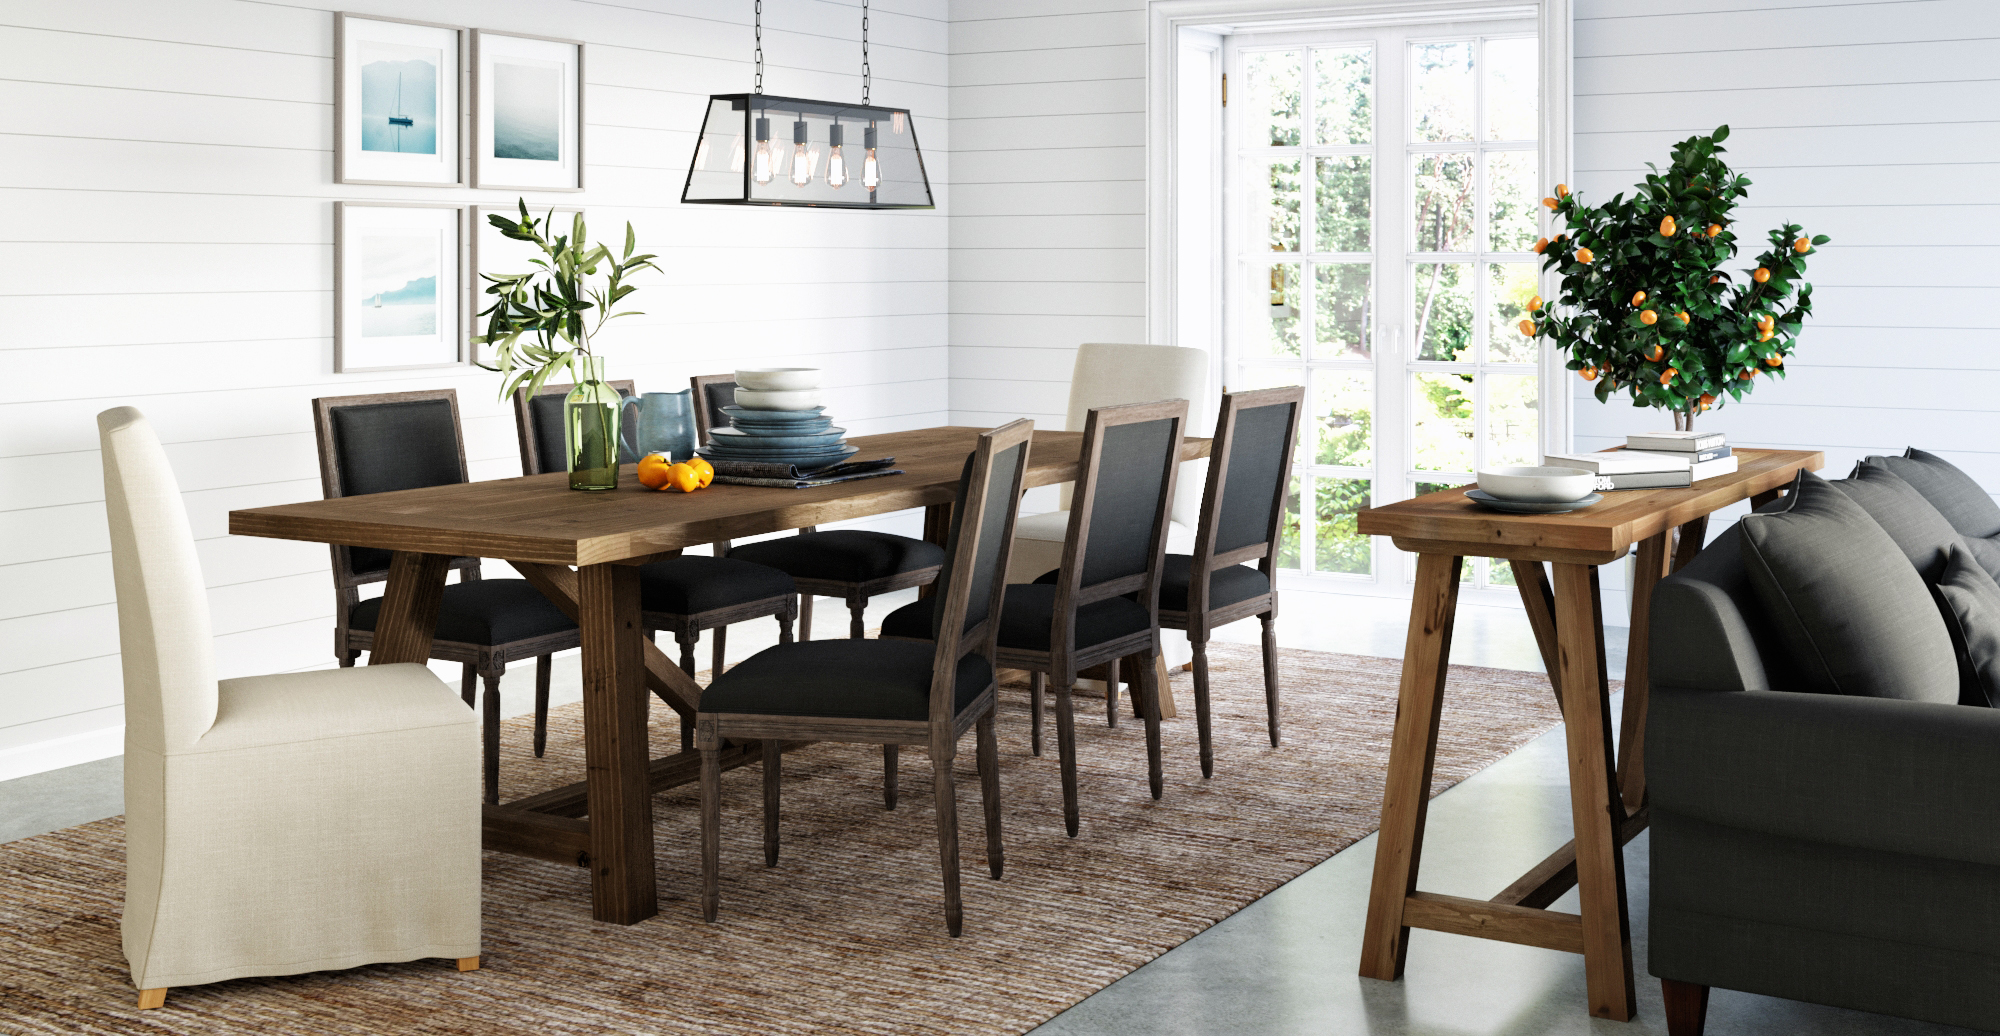 Brosa Petit Fleur Dining Chairs and Grace Dining Chairs with Slip Cover styled in classic traditional dining room